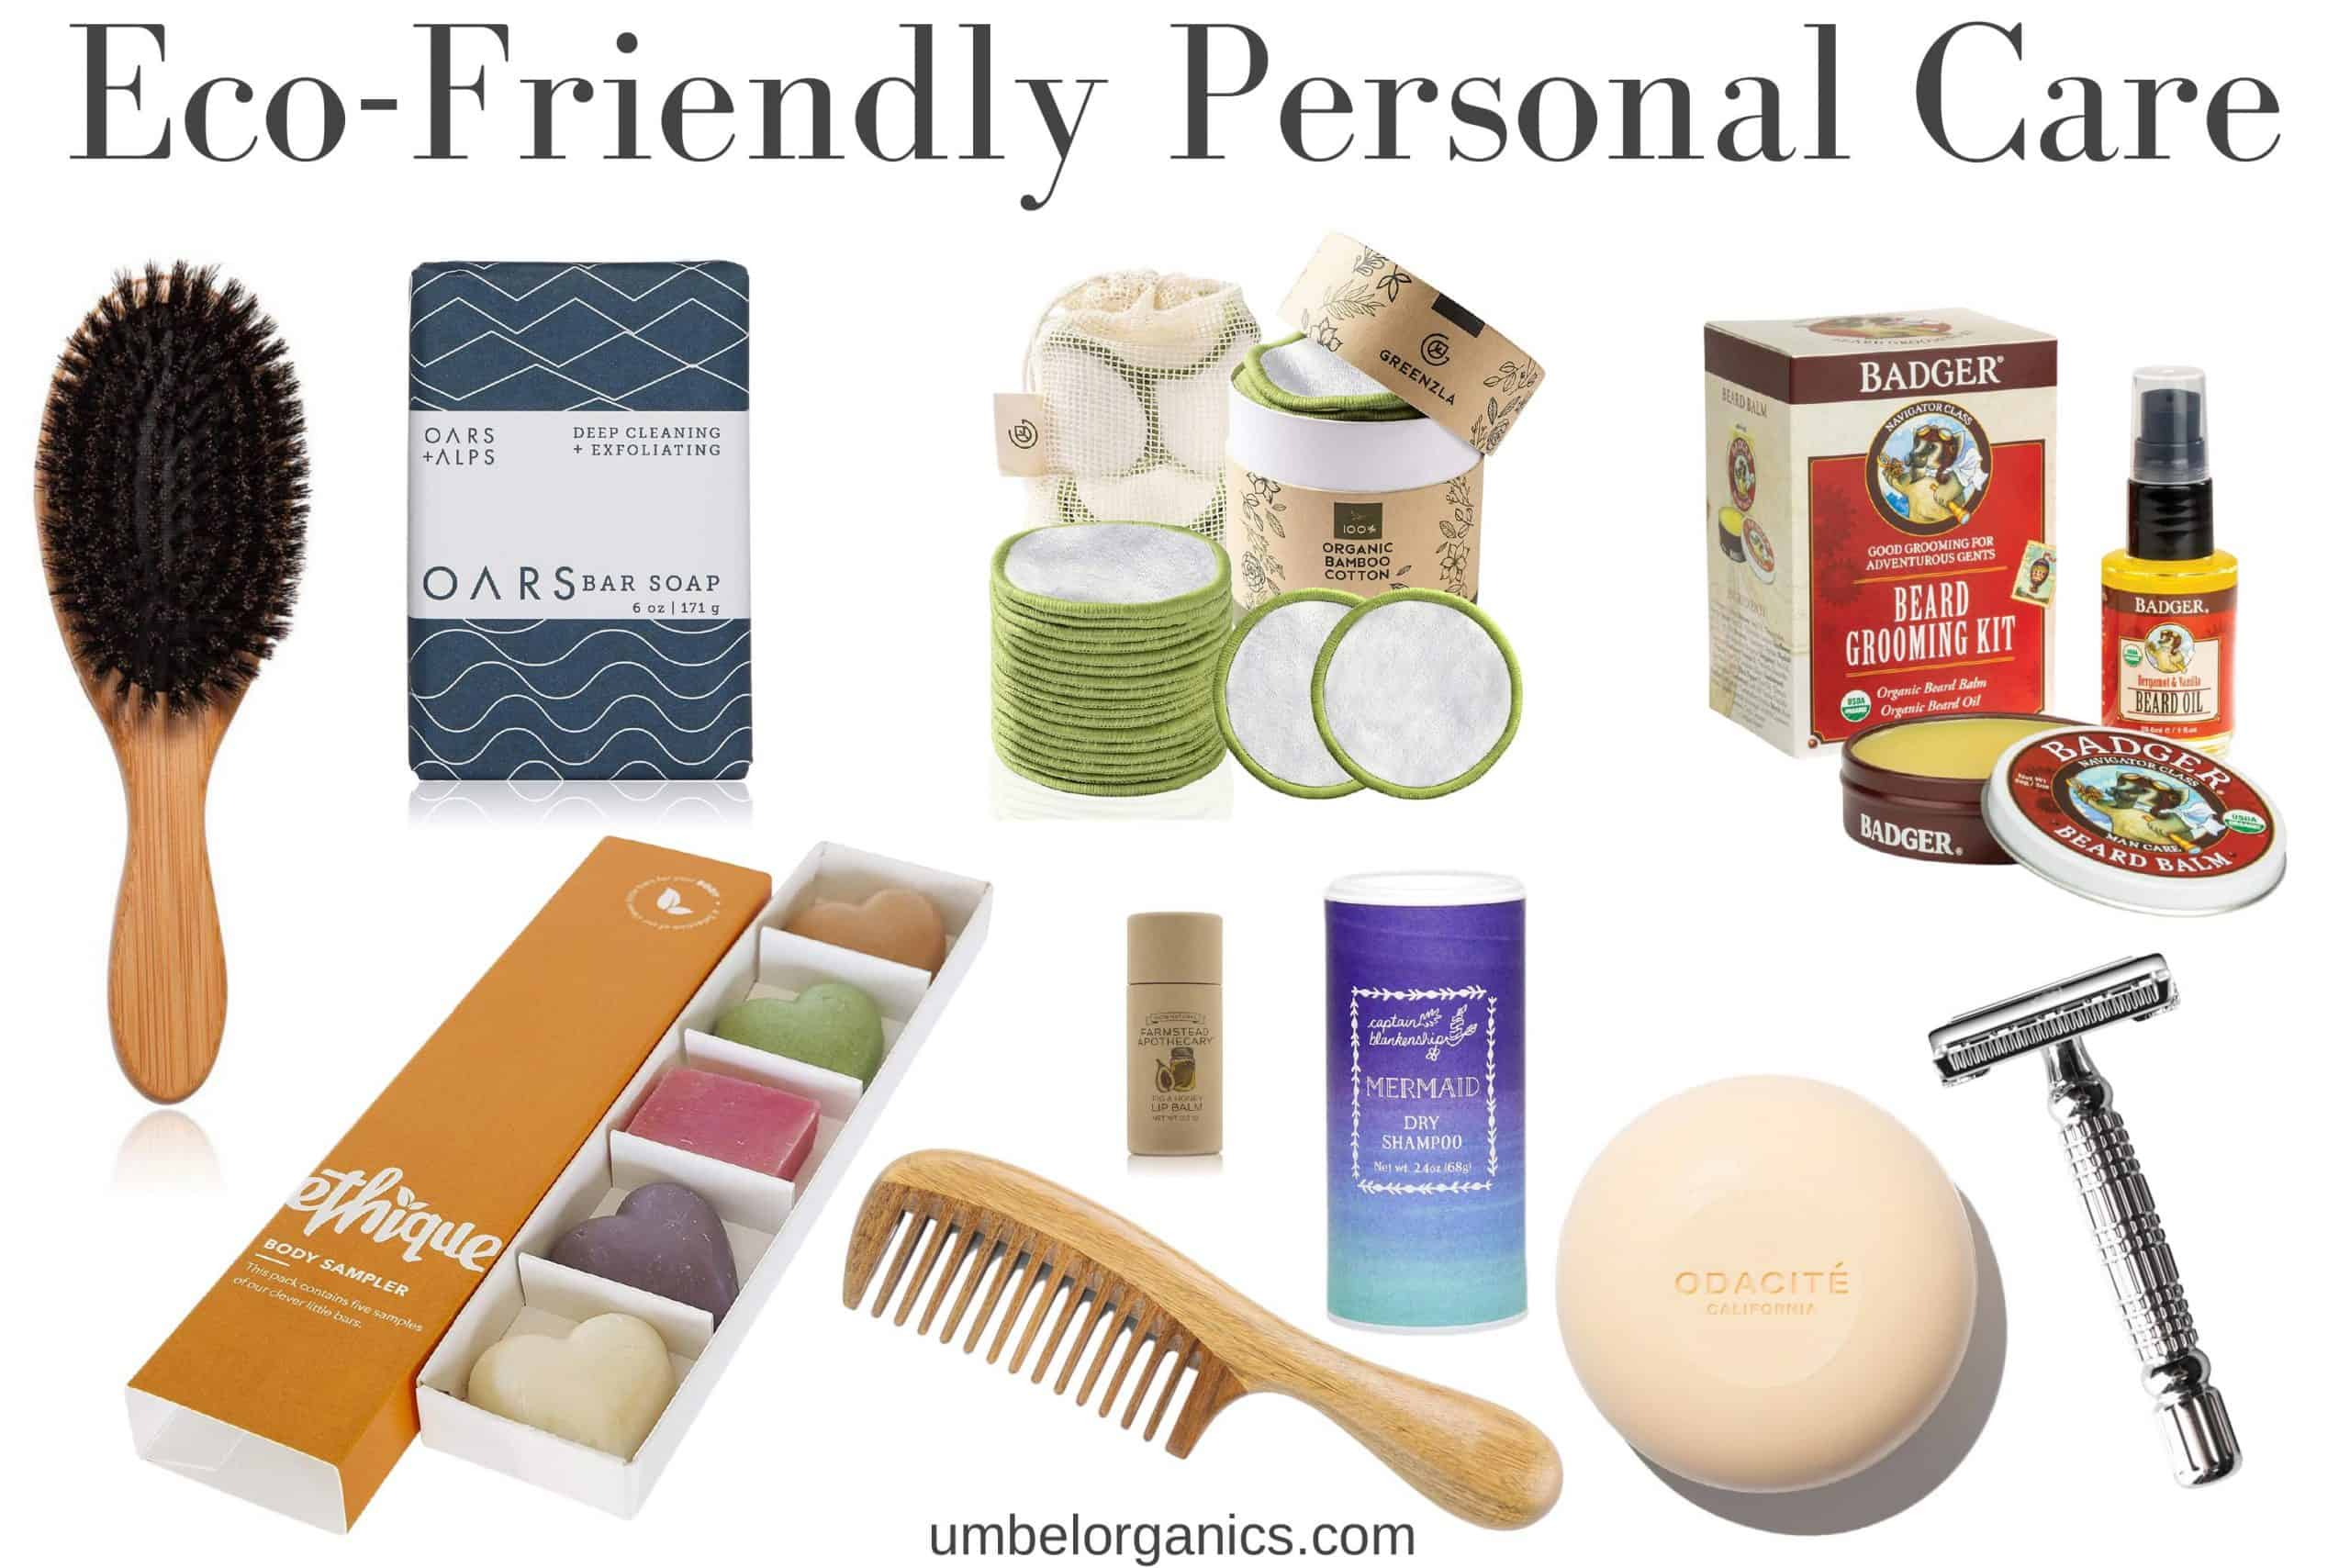 Eco-Friendly Personal Care Gifts